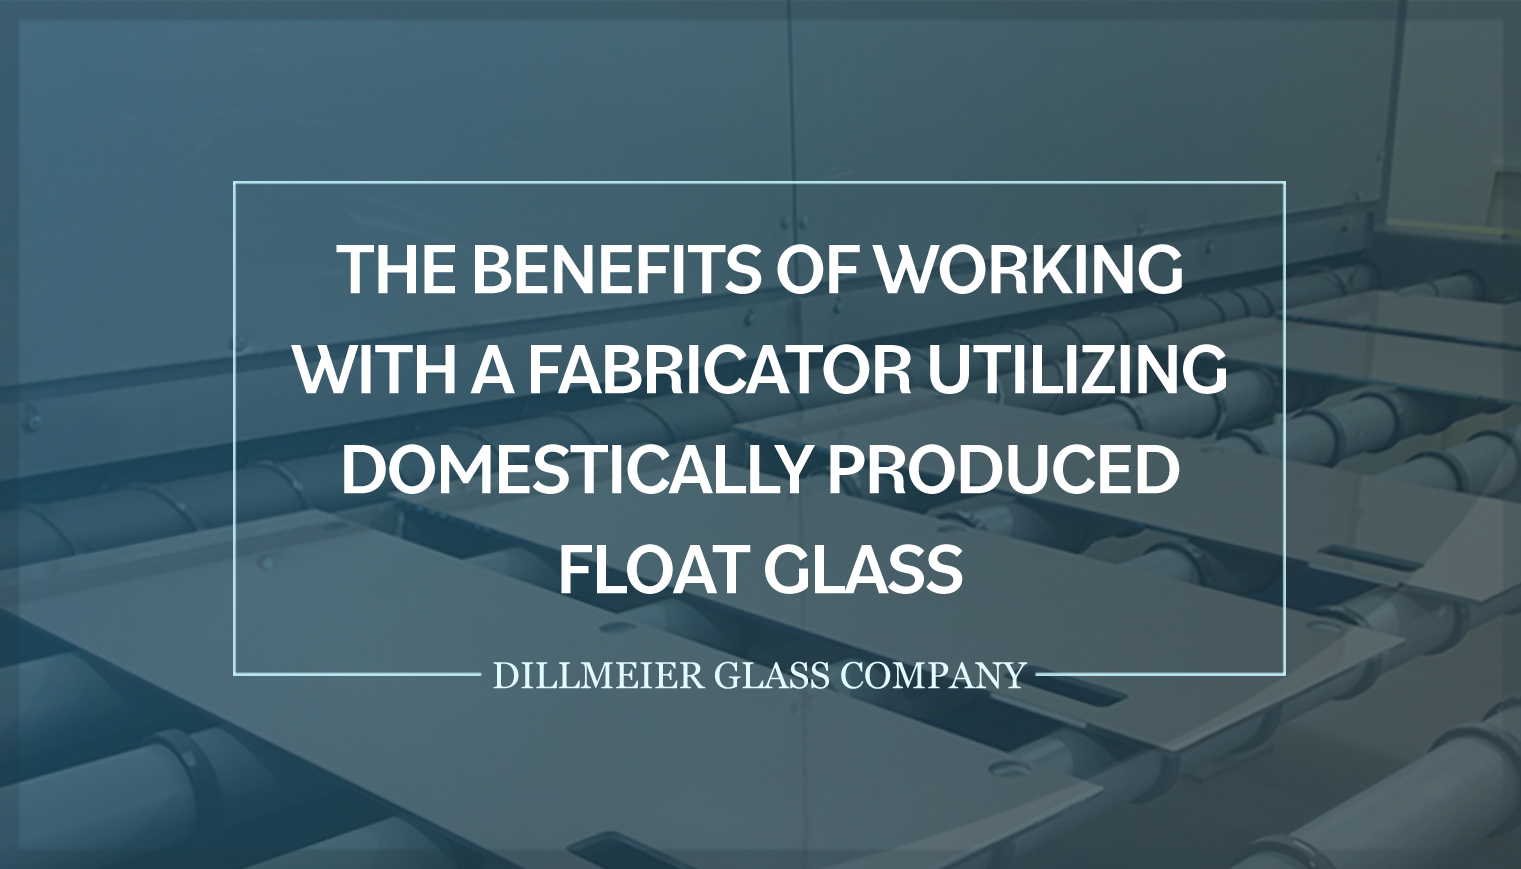 The Benefits of Working With a Fabricator Utilizing Domestically Produced Float Glass